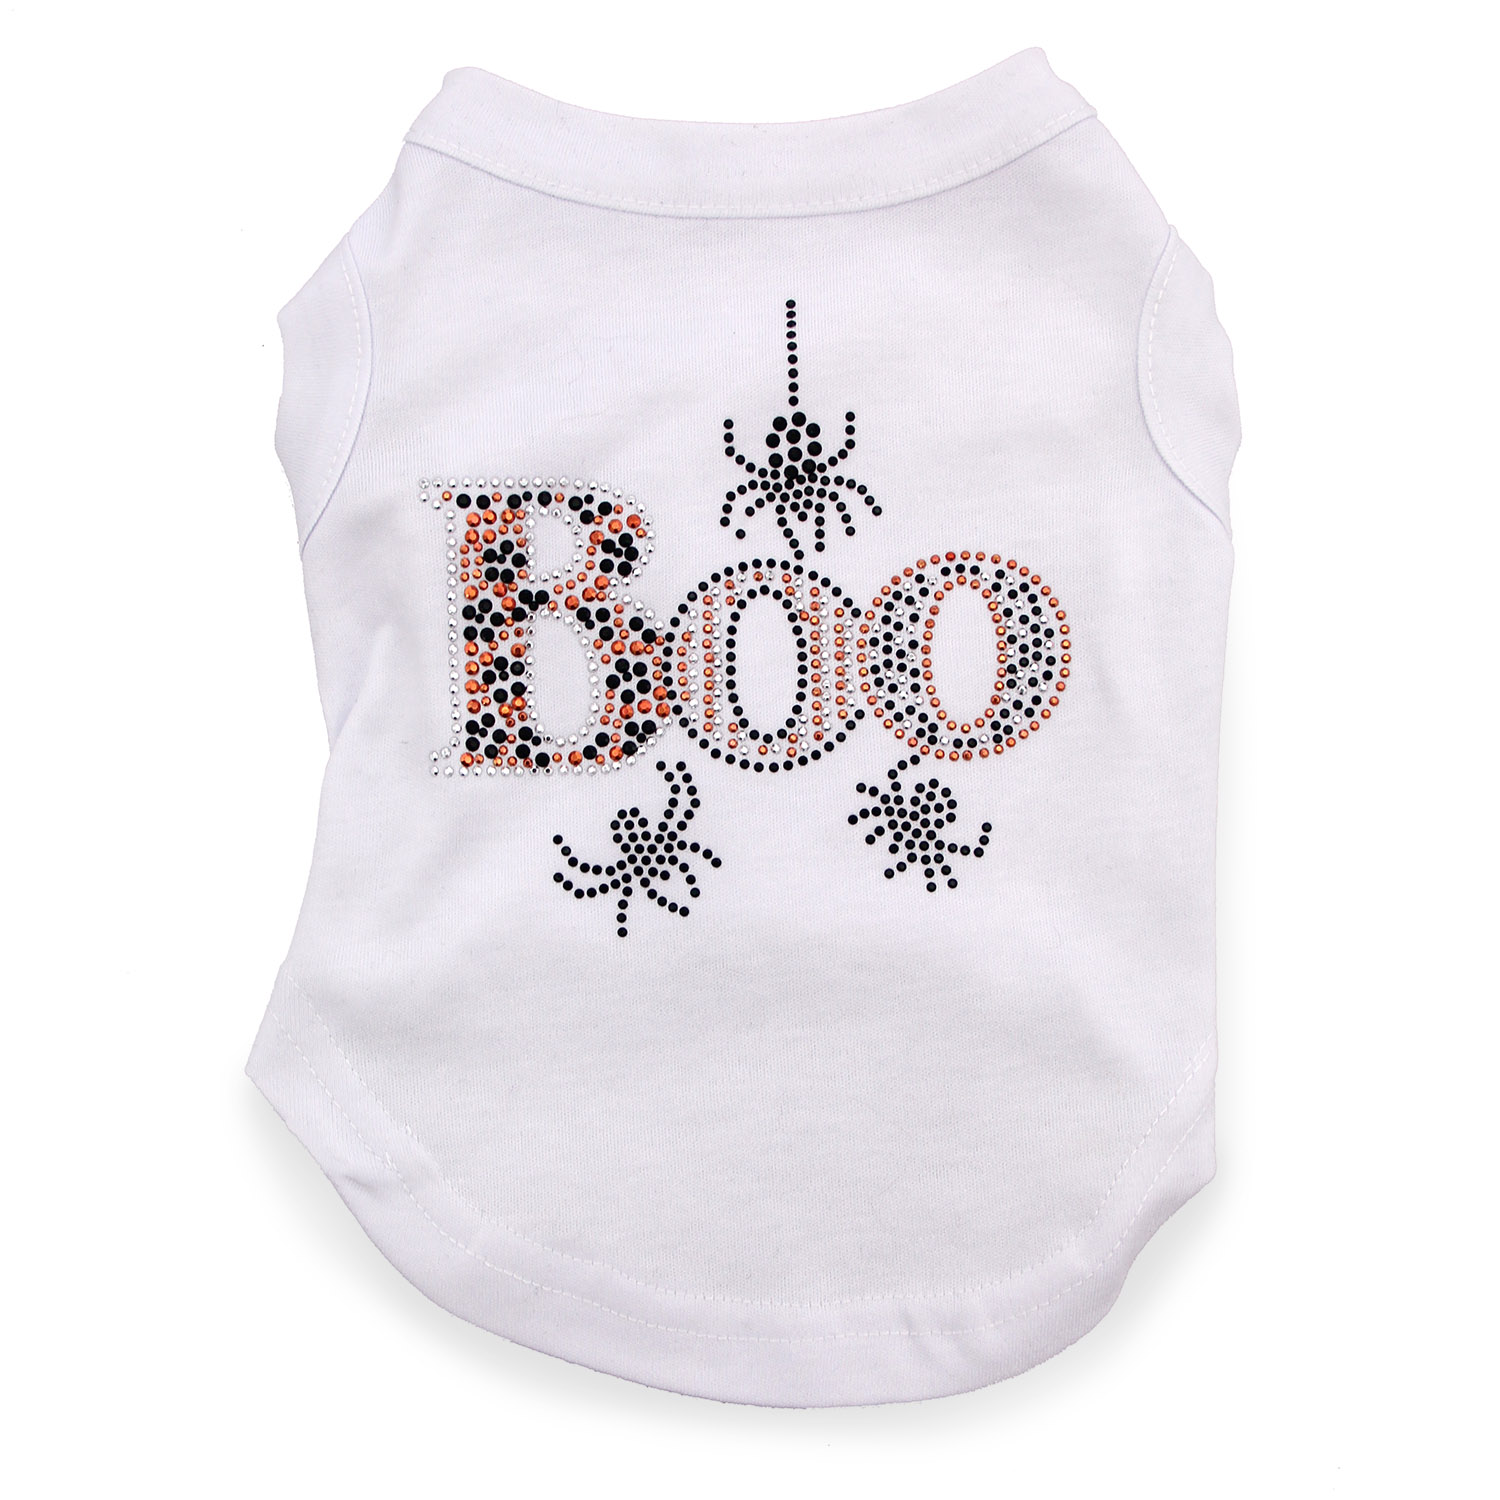 Boo Rhinestone Dog Shirt - White